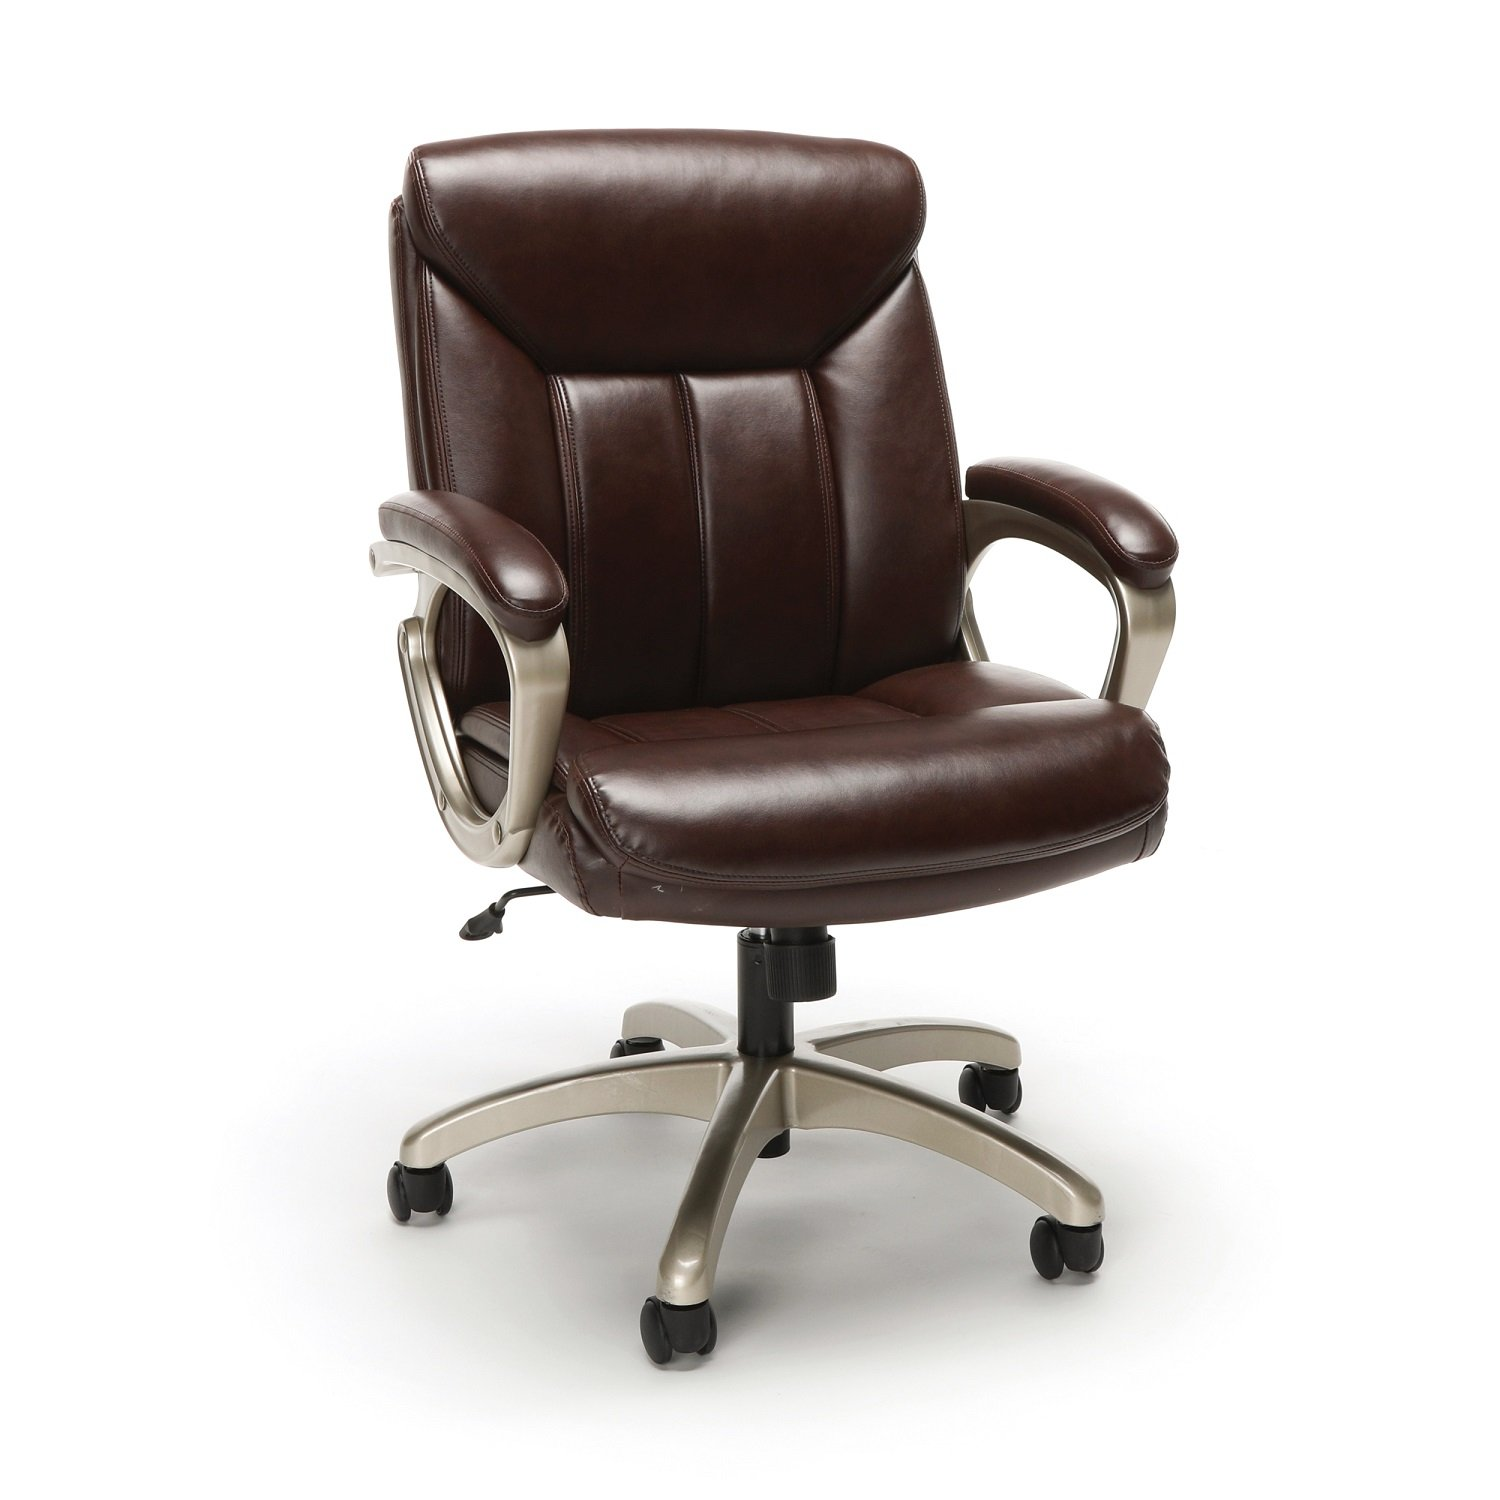 Essentials Leather Executive Chair - Ergonomic Swivel Computer Chair with Arms, Brown (ESS-6020-BRN)